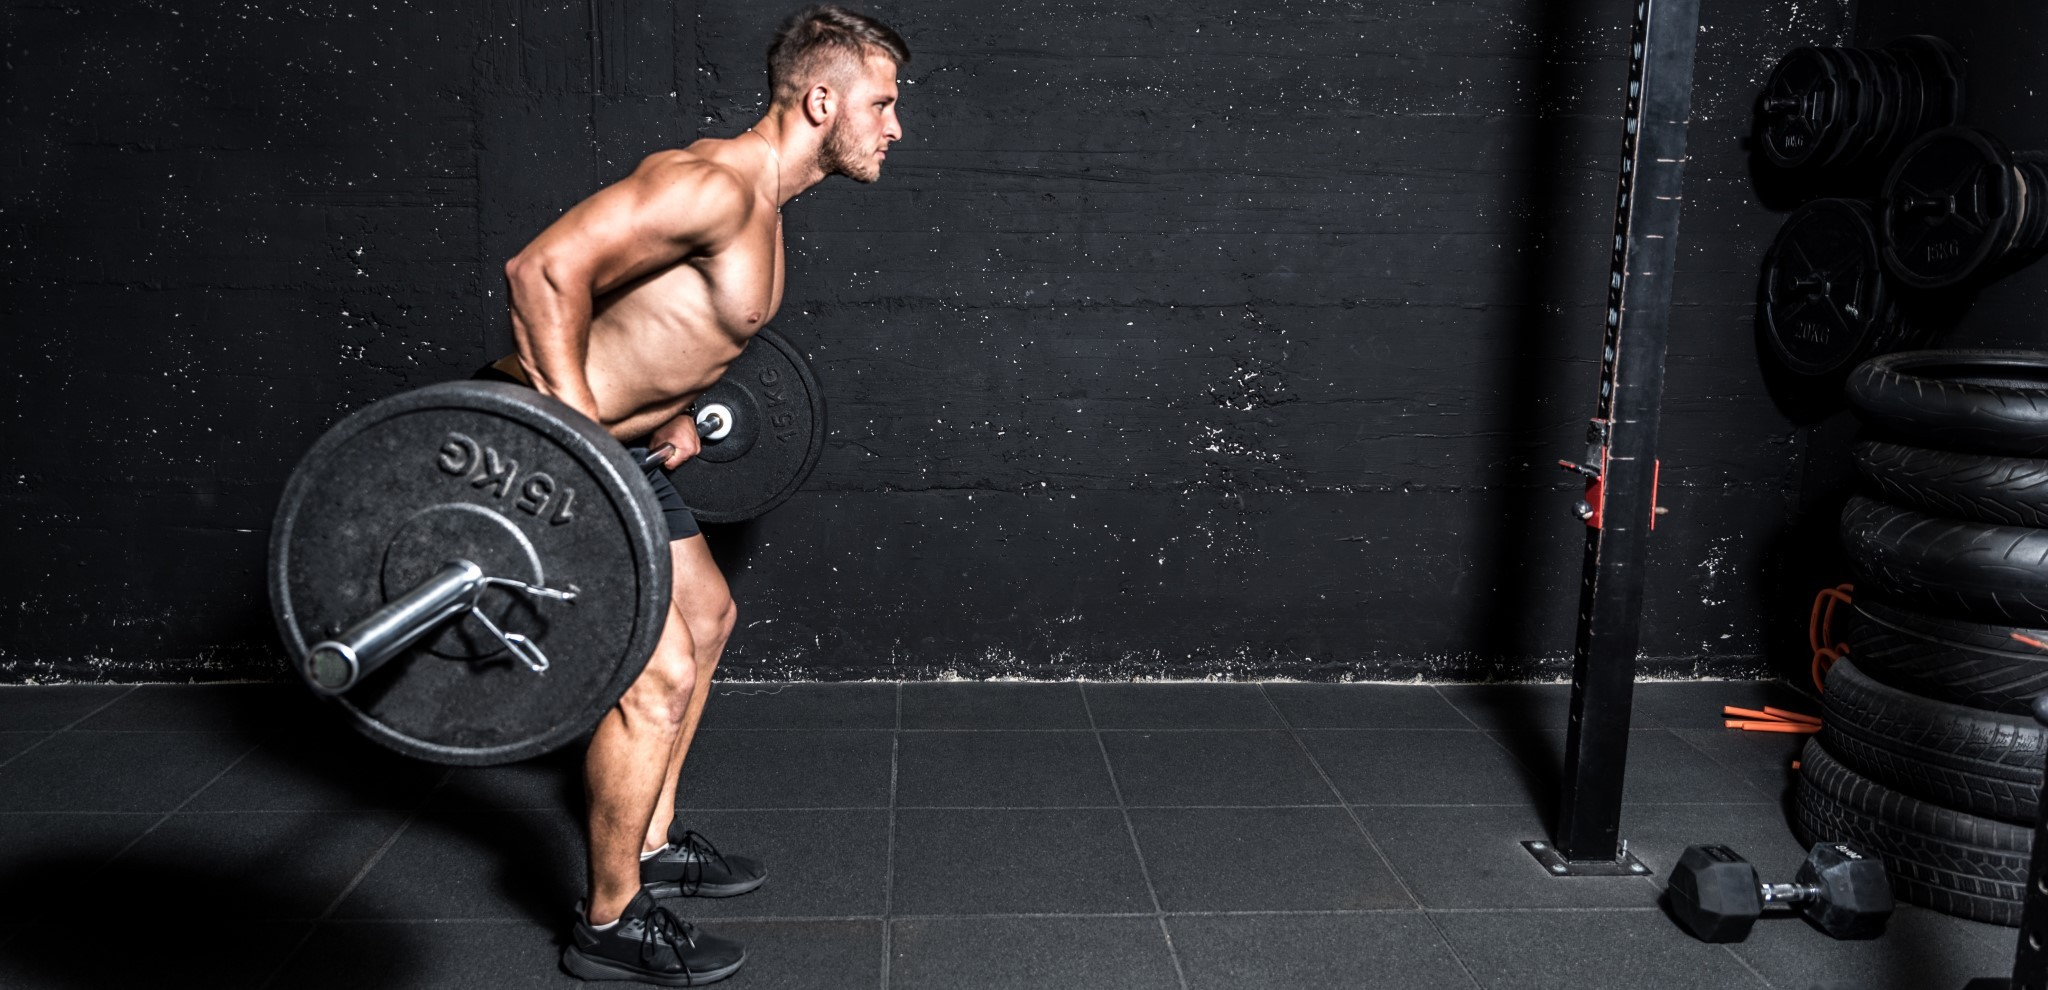 An athlete lifting weight to boost testosterone levels naturally